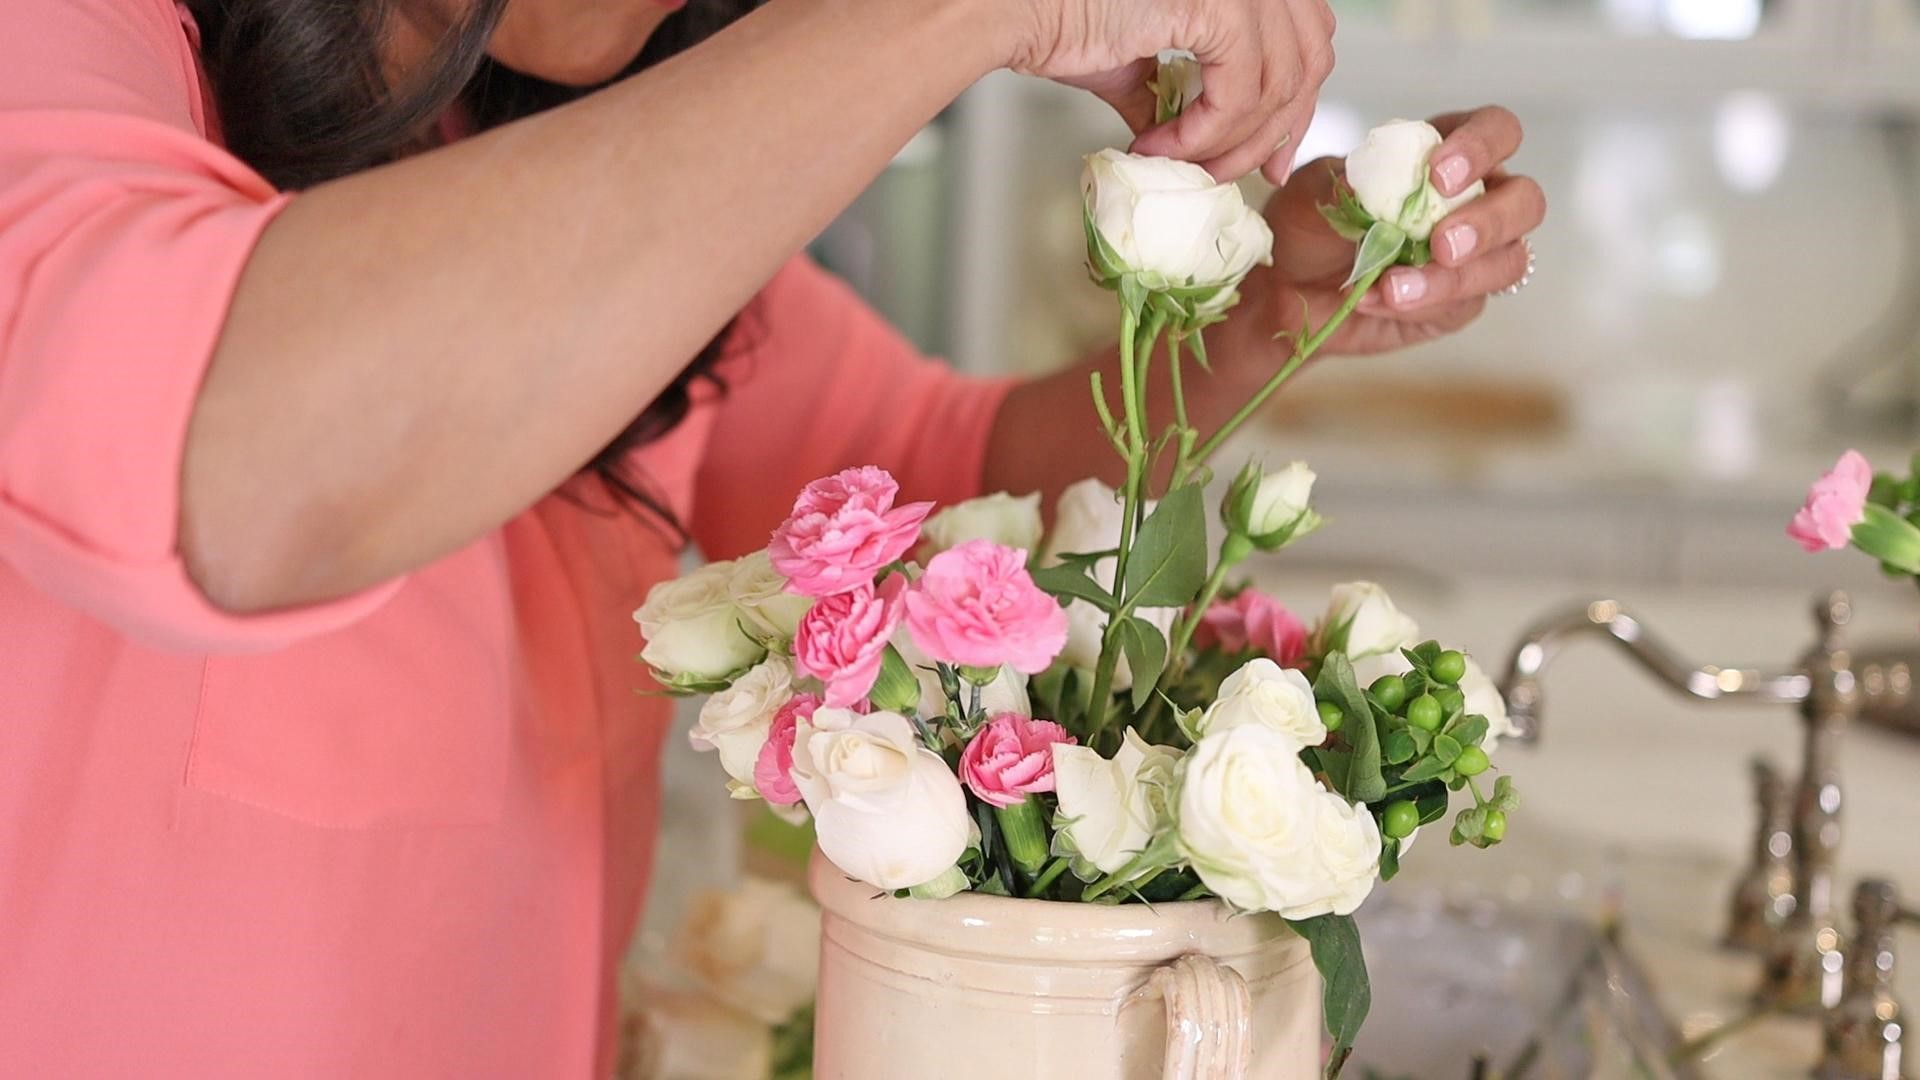 Amitha placing white roses and pink flowers in a french country confit pot vase.